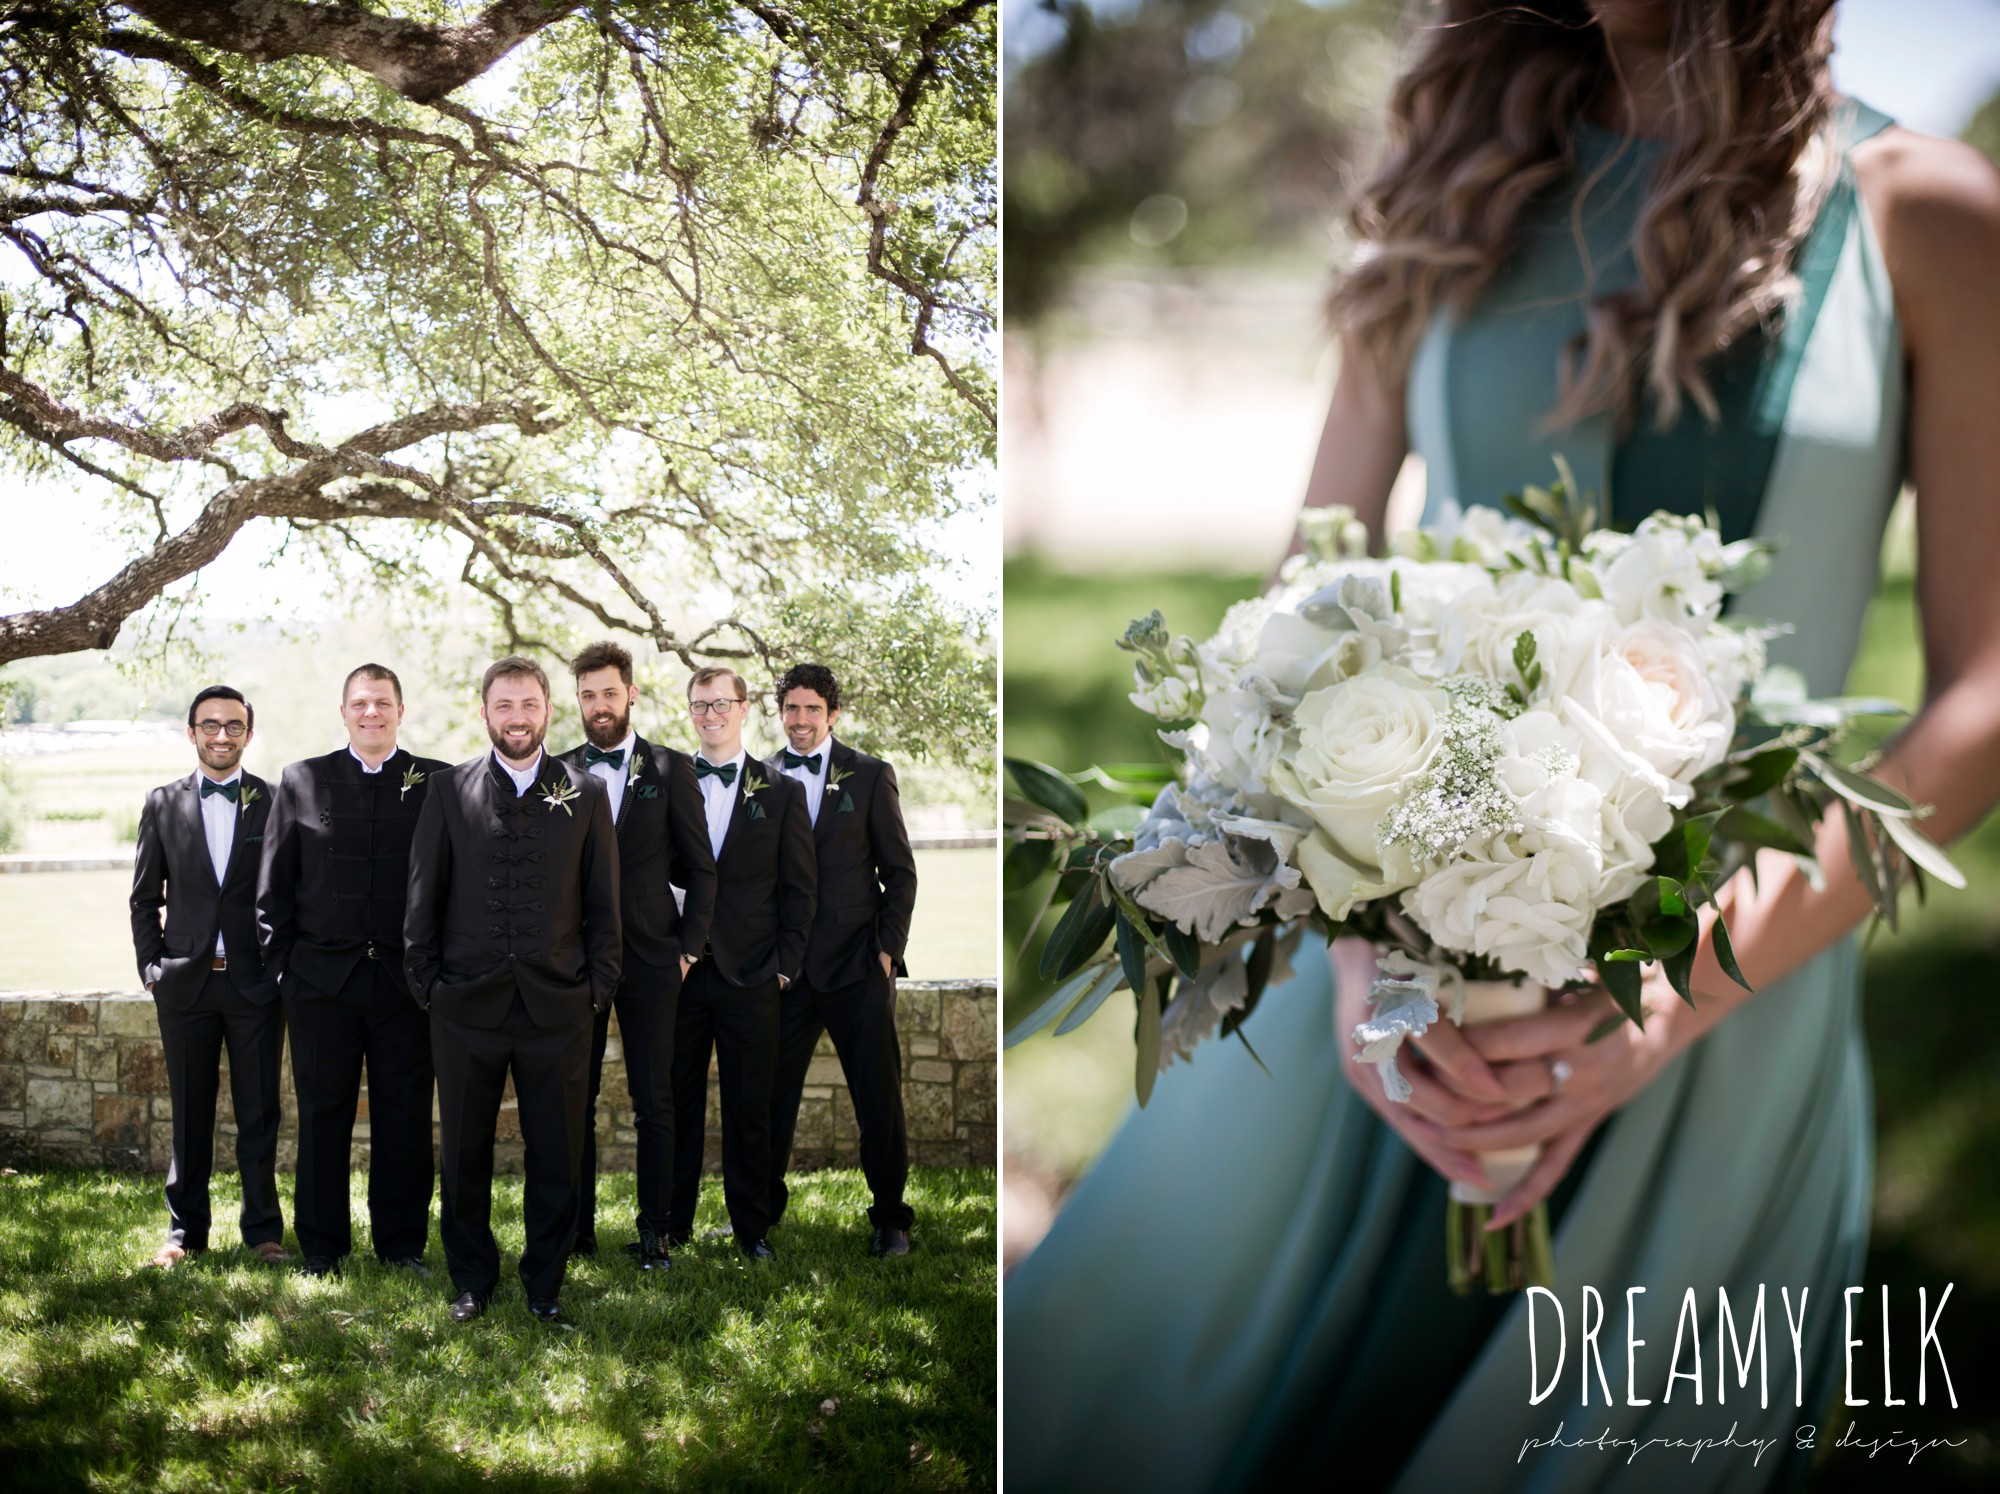 groom, traditional hungarian tux, groomsmen, hunter green bowties, green bridesmaids dresses, mod cloth, white wedding bouquets, outdoor spring april wedding photo, chapel dulcinea ceremony, thurman's mansion, dripping springs, texas {dreamy elk photography and design}